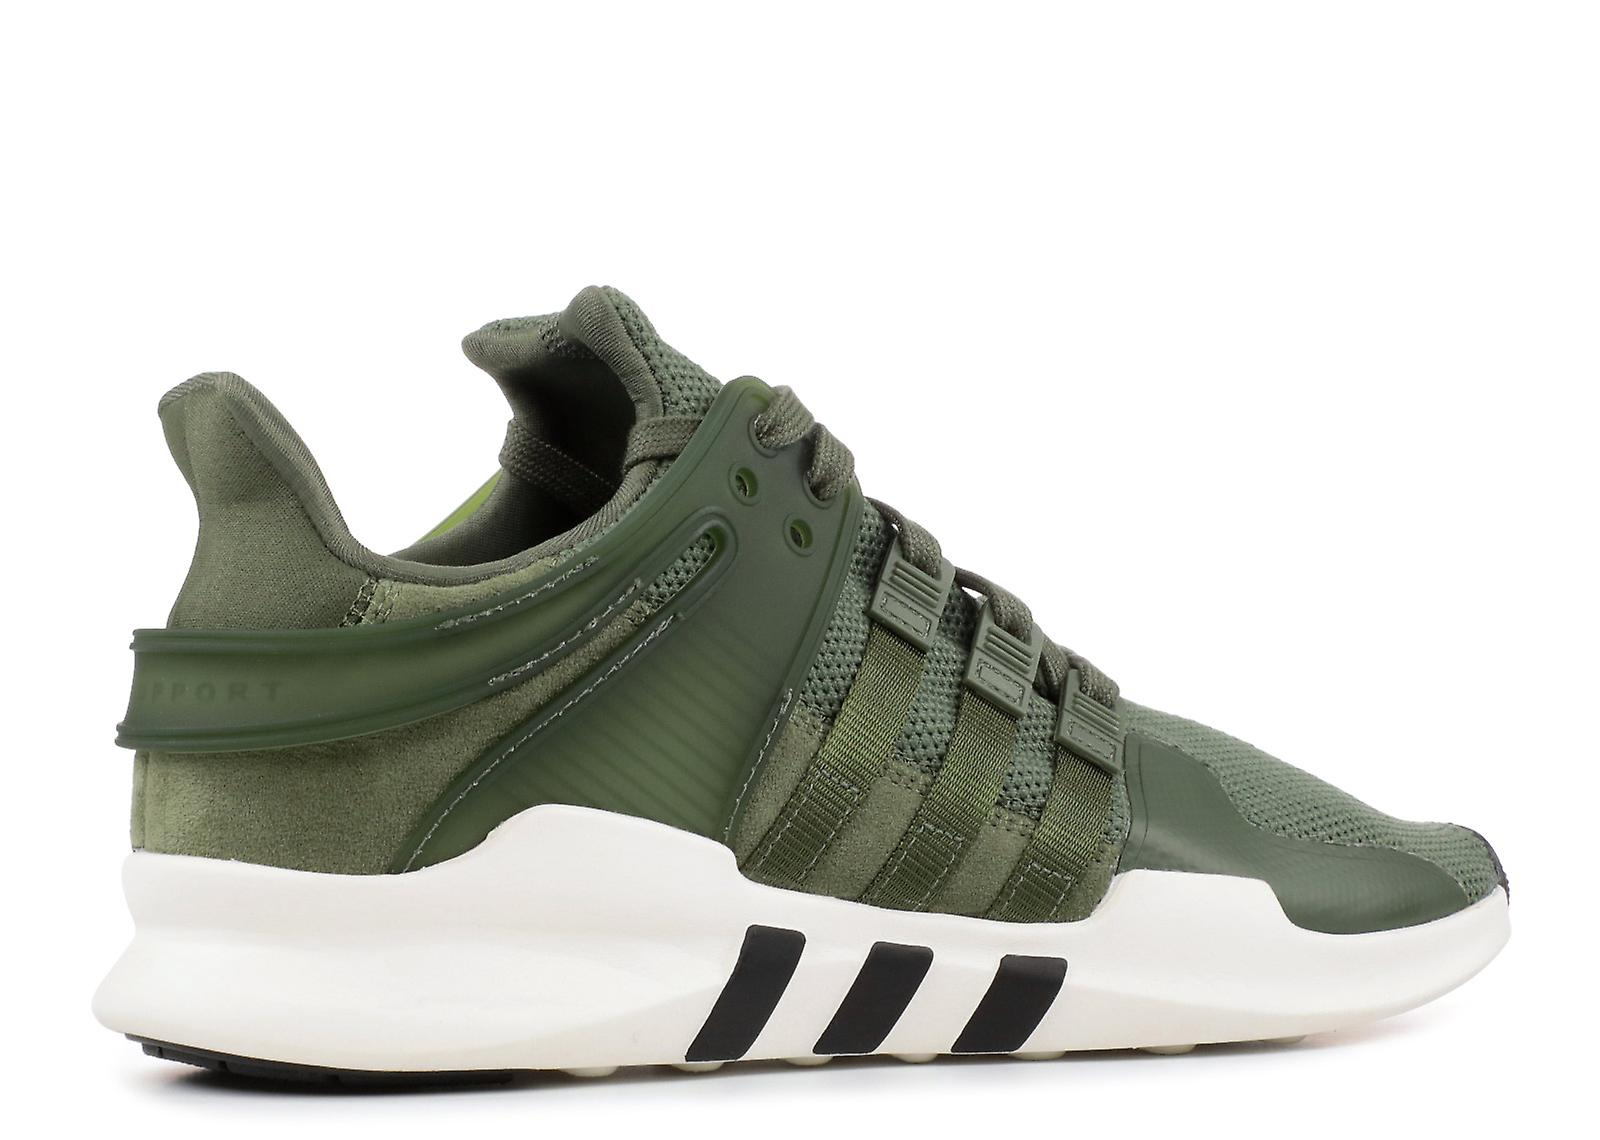 Eqt Support Adv W - Cp9689 - Shoes